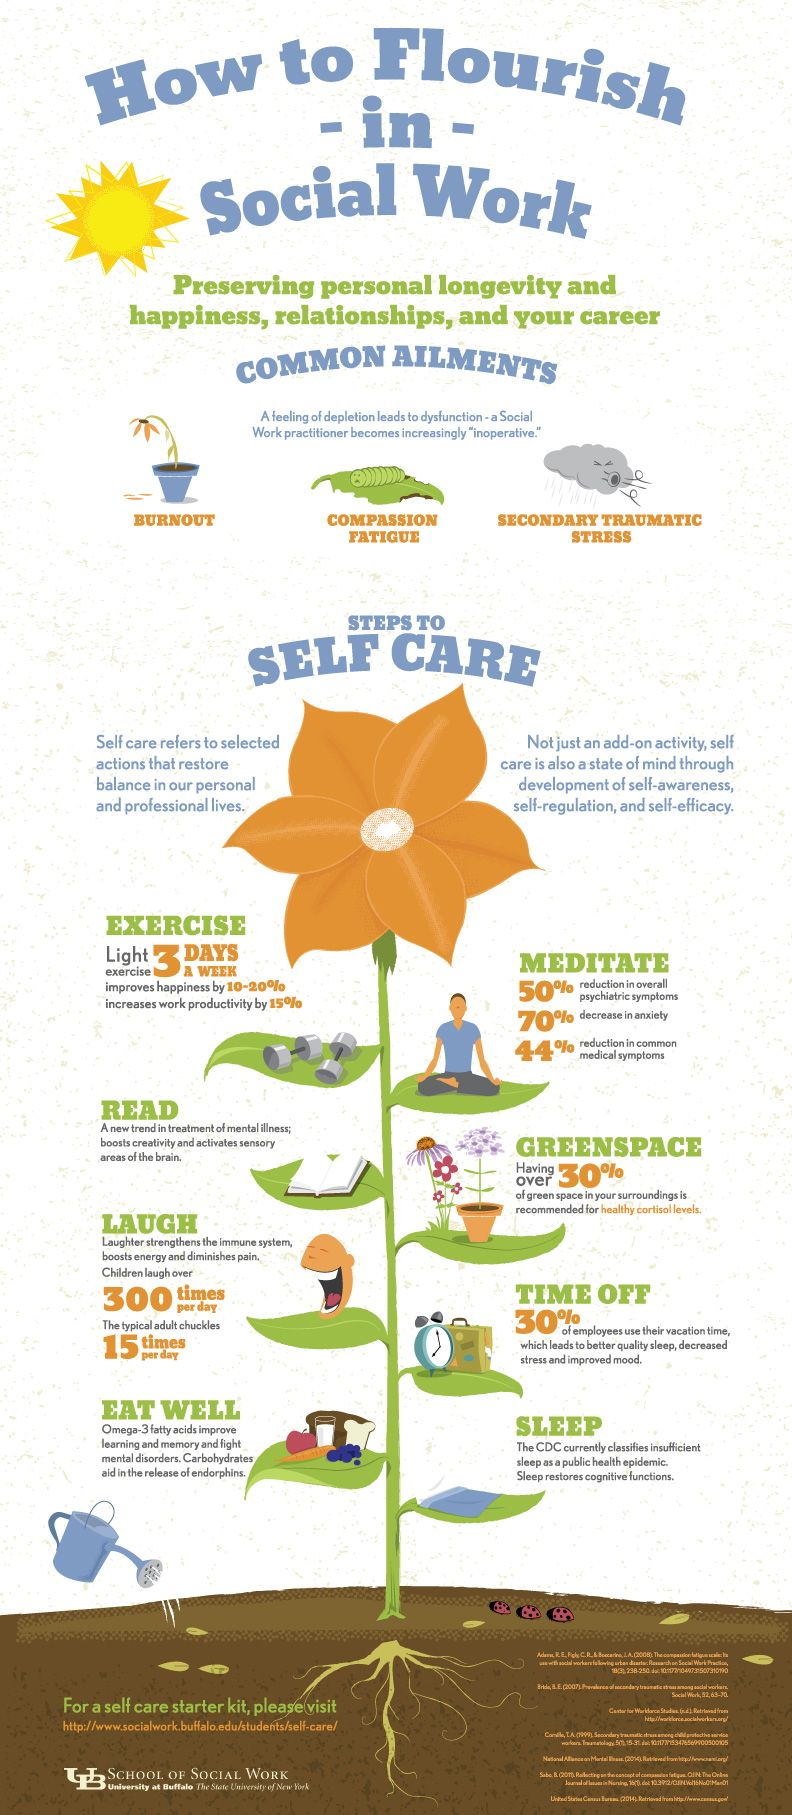 Pin by ubuffalo school of social work on selfcare